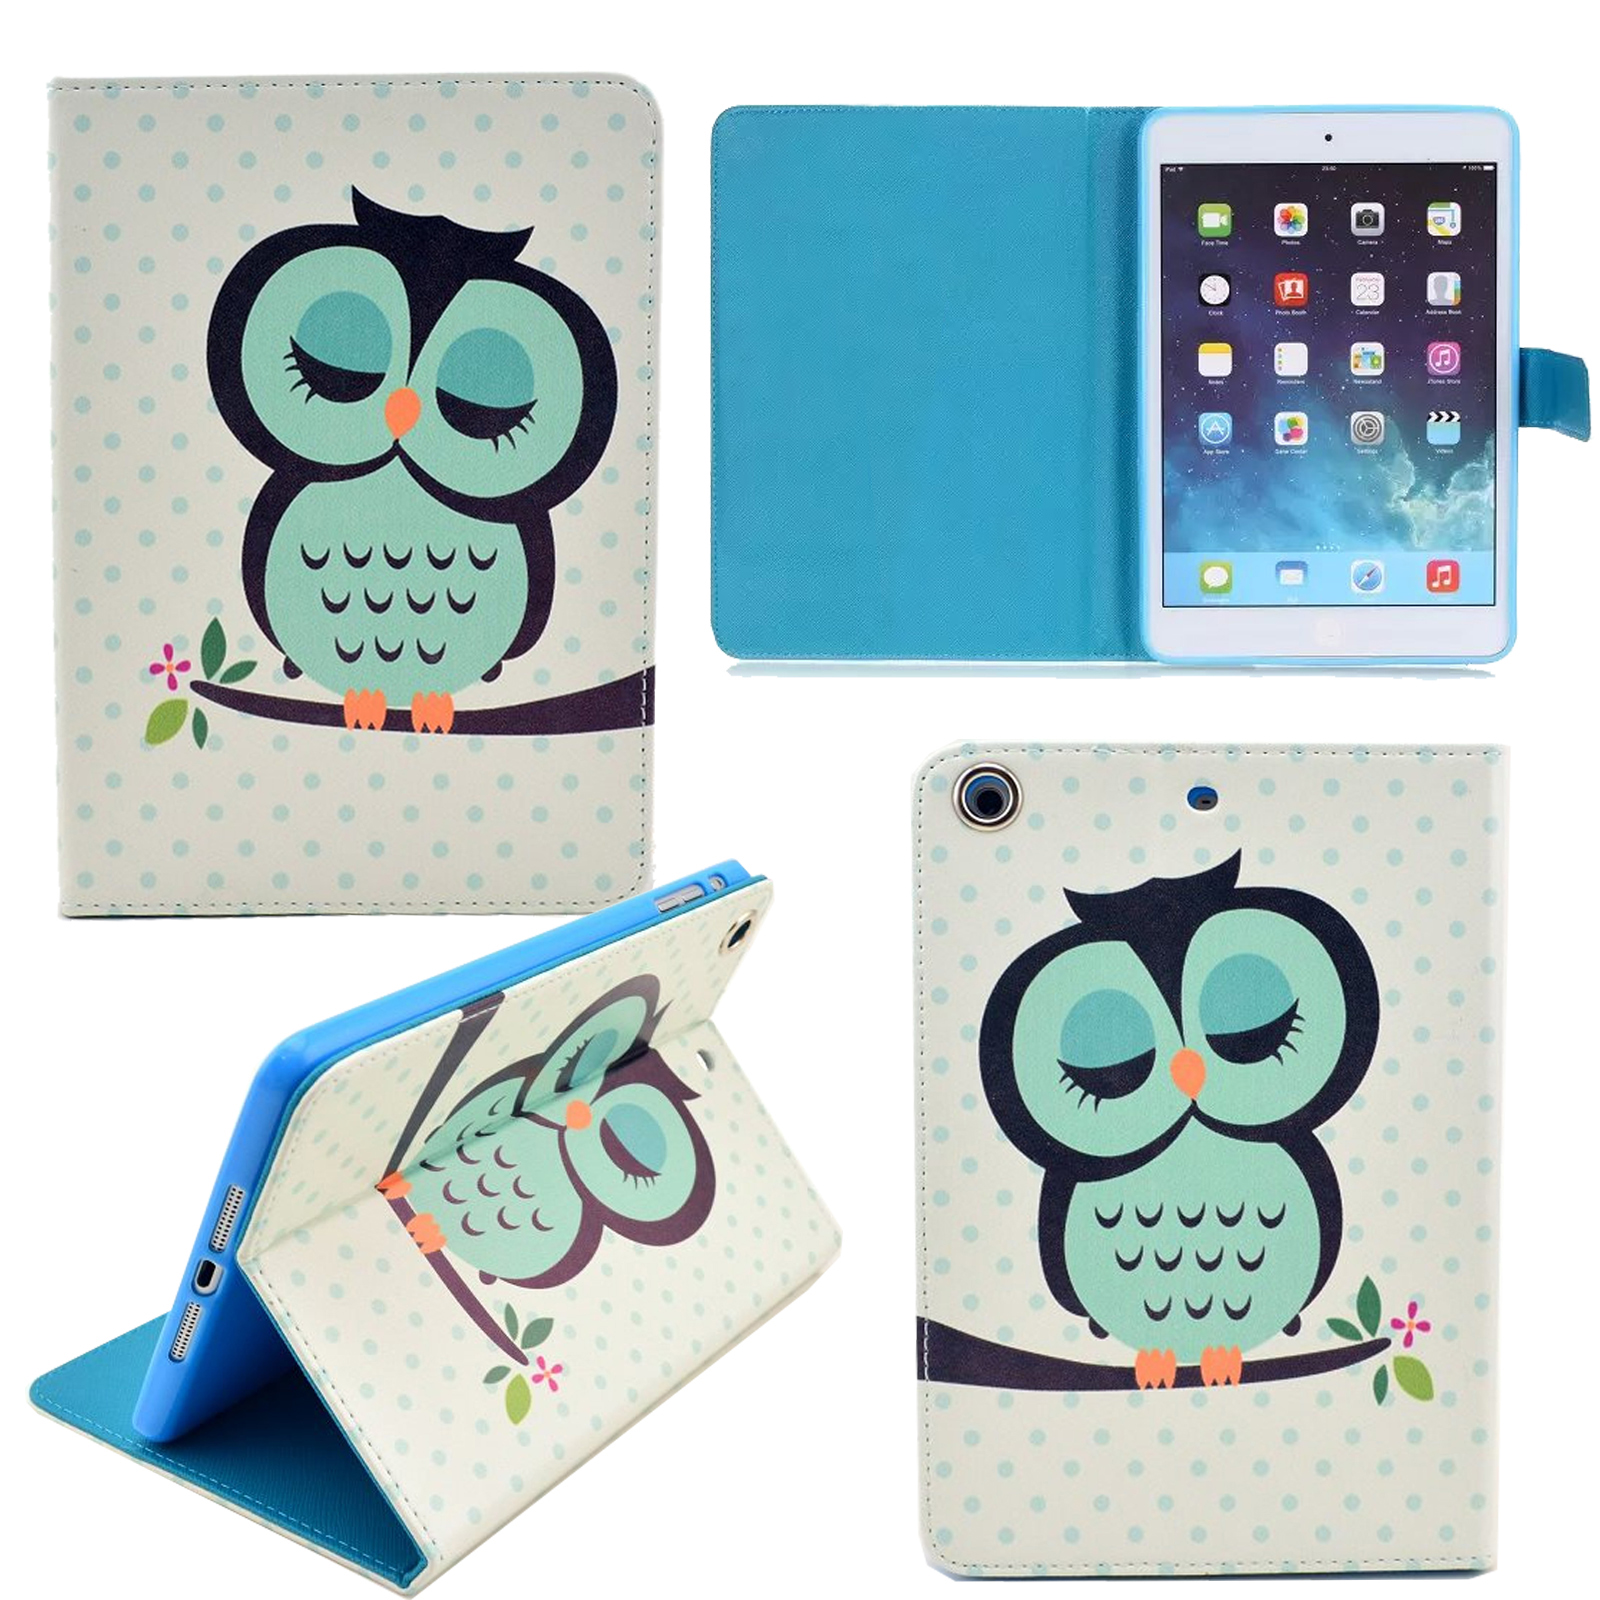 15 insanely cute iPad cases and sleeves for girls of all ages |Cute Ipad Cases